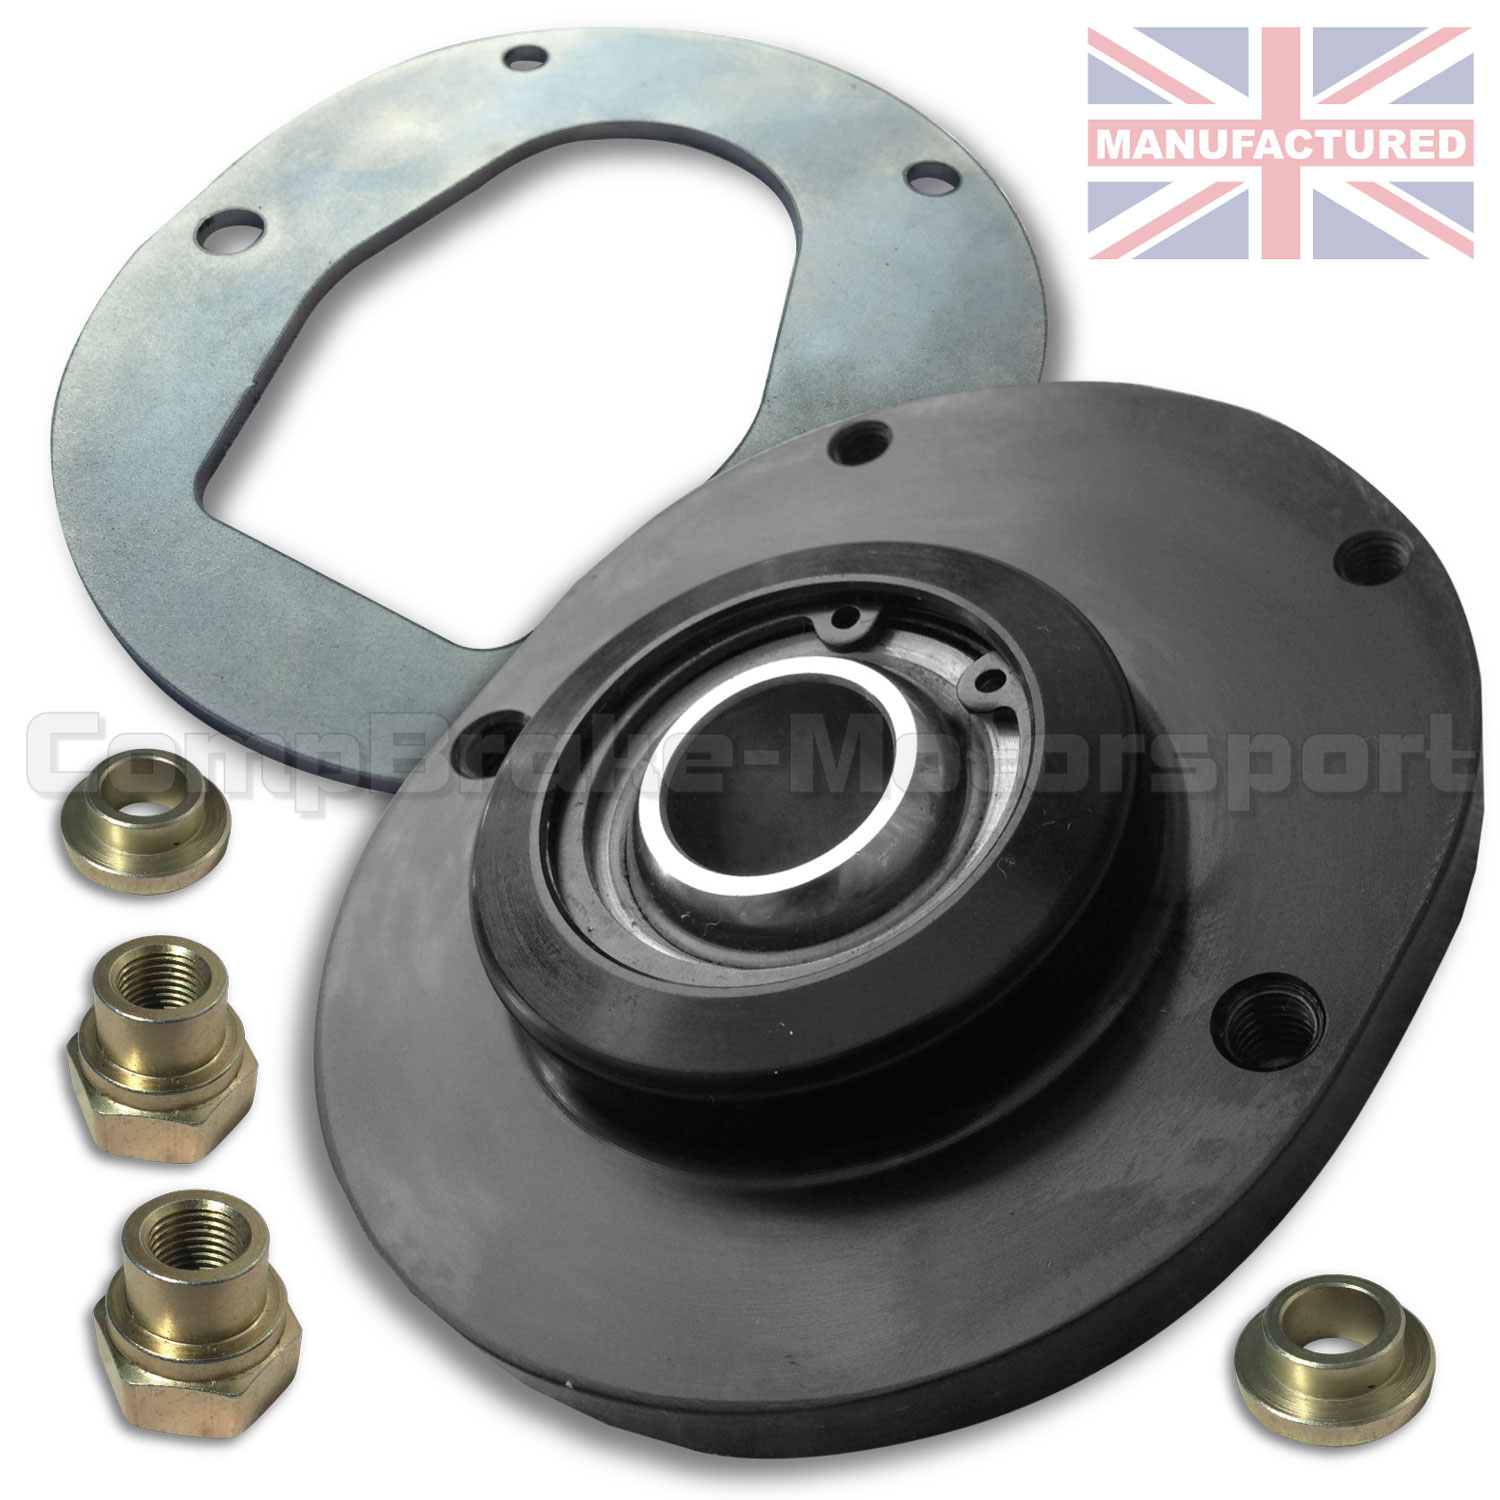 Cmb Gallon Baffled Aluminium Fuel Tank Lx Wx H likewise Mikoyangurevich Mig Flogger furthermore Cmb Bleed Nipple With Dust Cover Plan further Cmb Jic Swirl Pot Ltr Circular Base Mount Mm Dia X Mm Breather Jic Inlet Jic Oulet Jic Skew together with S Ls Motormount. on jaguar engine conversions